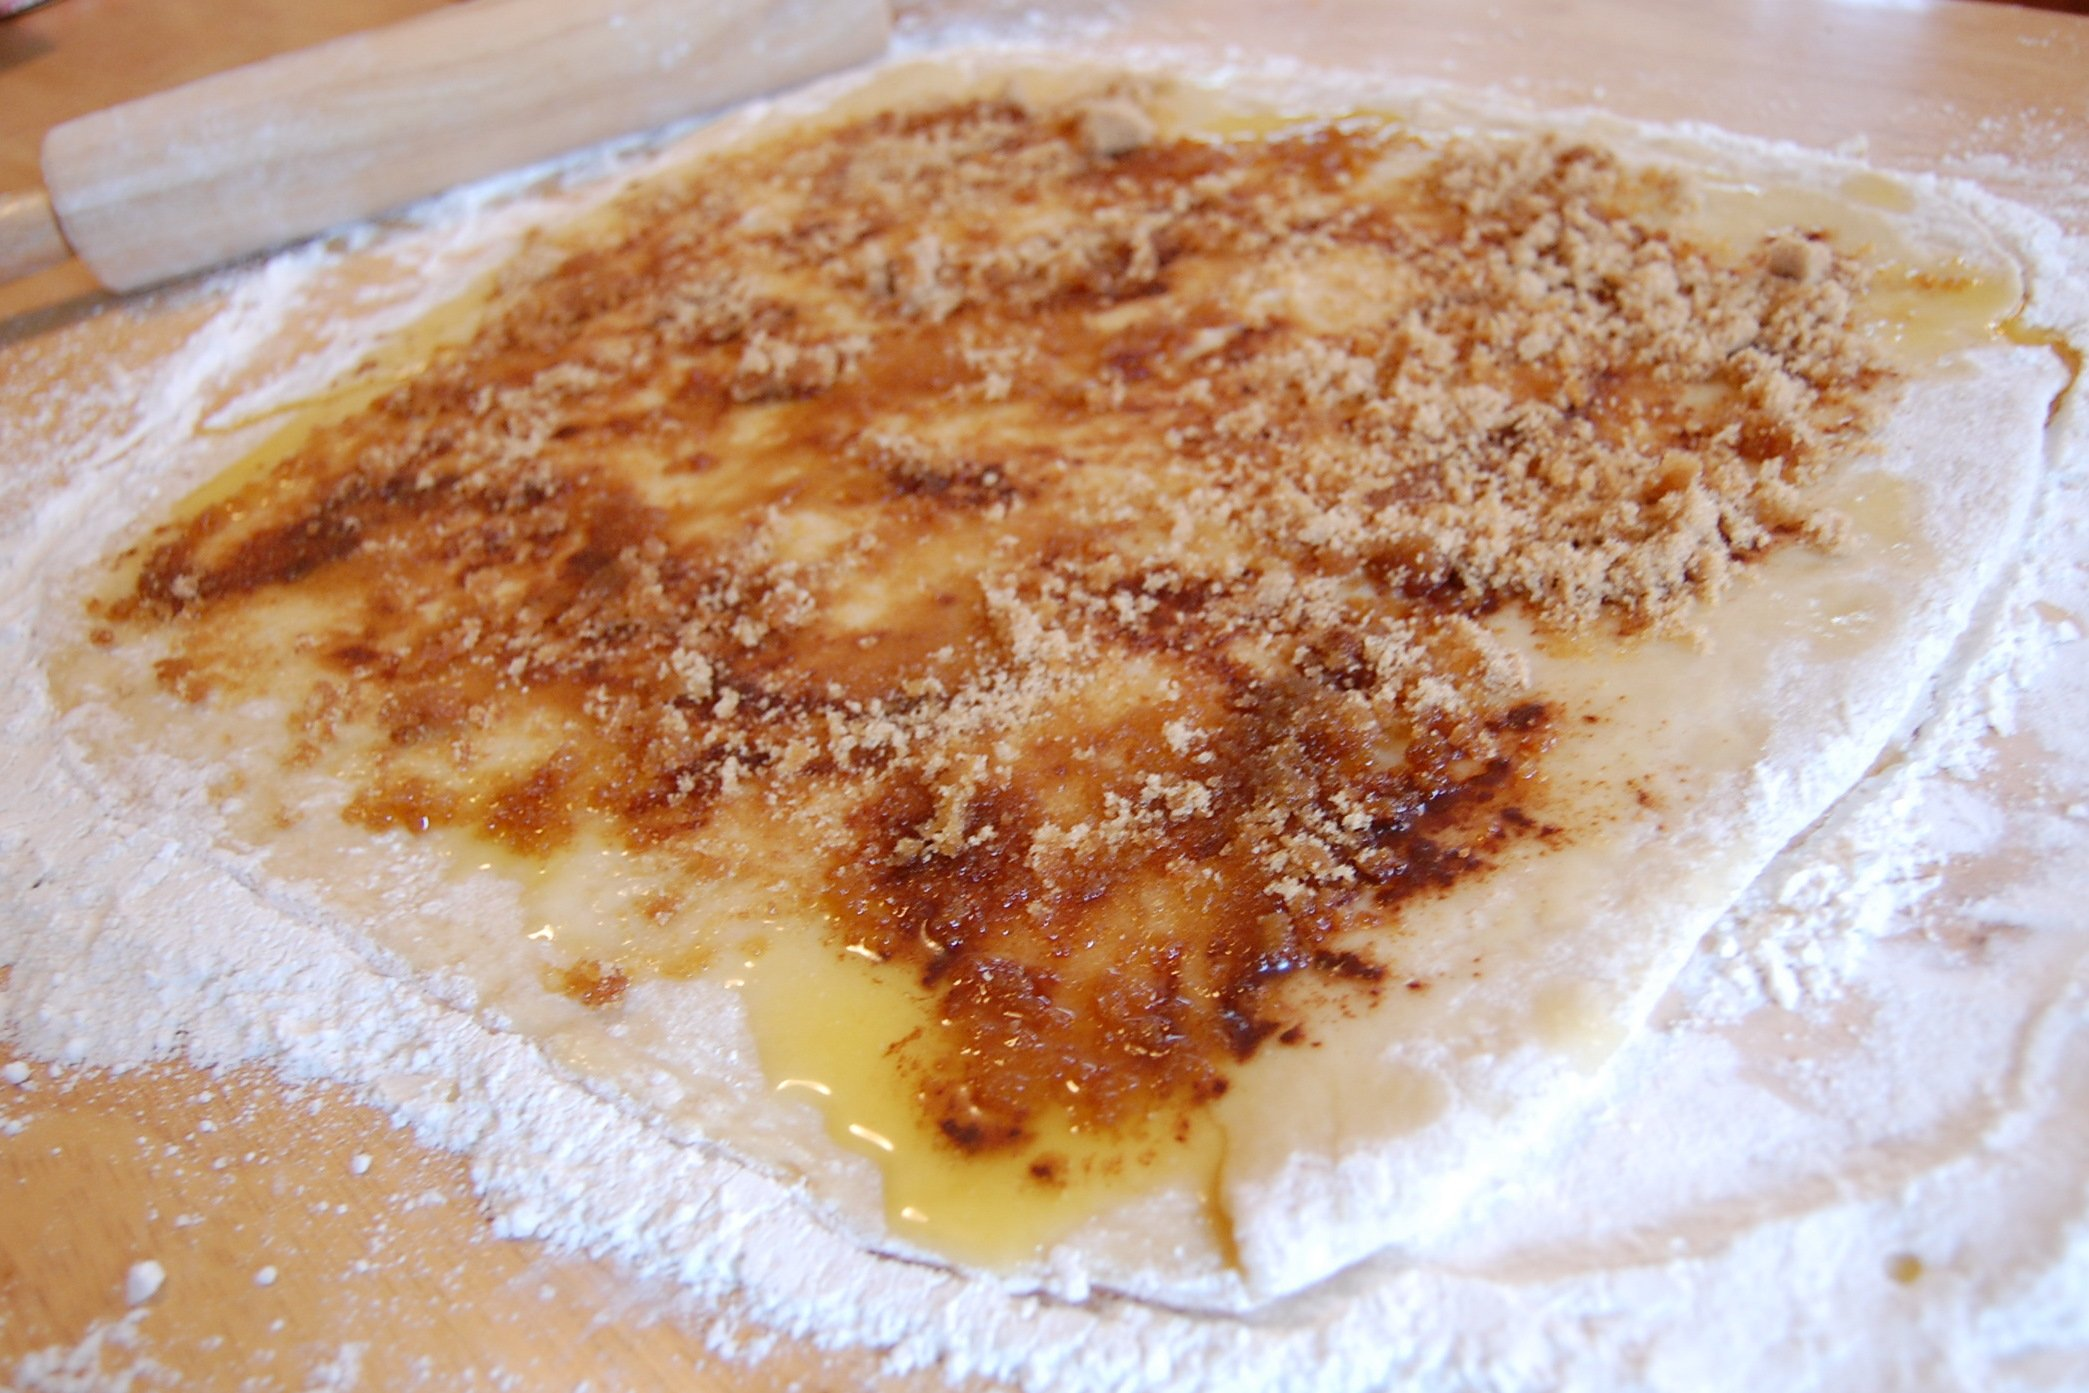 Dough with melted butter and cinnamon spread on top.